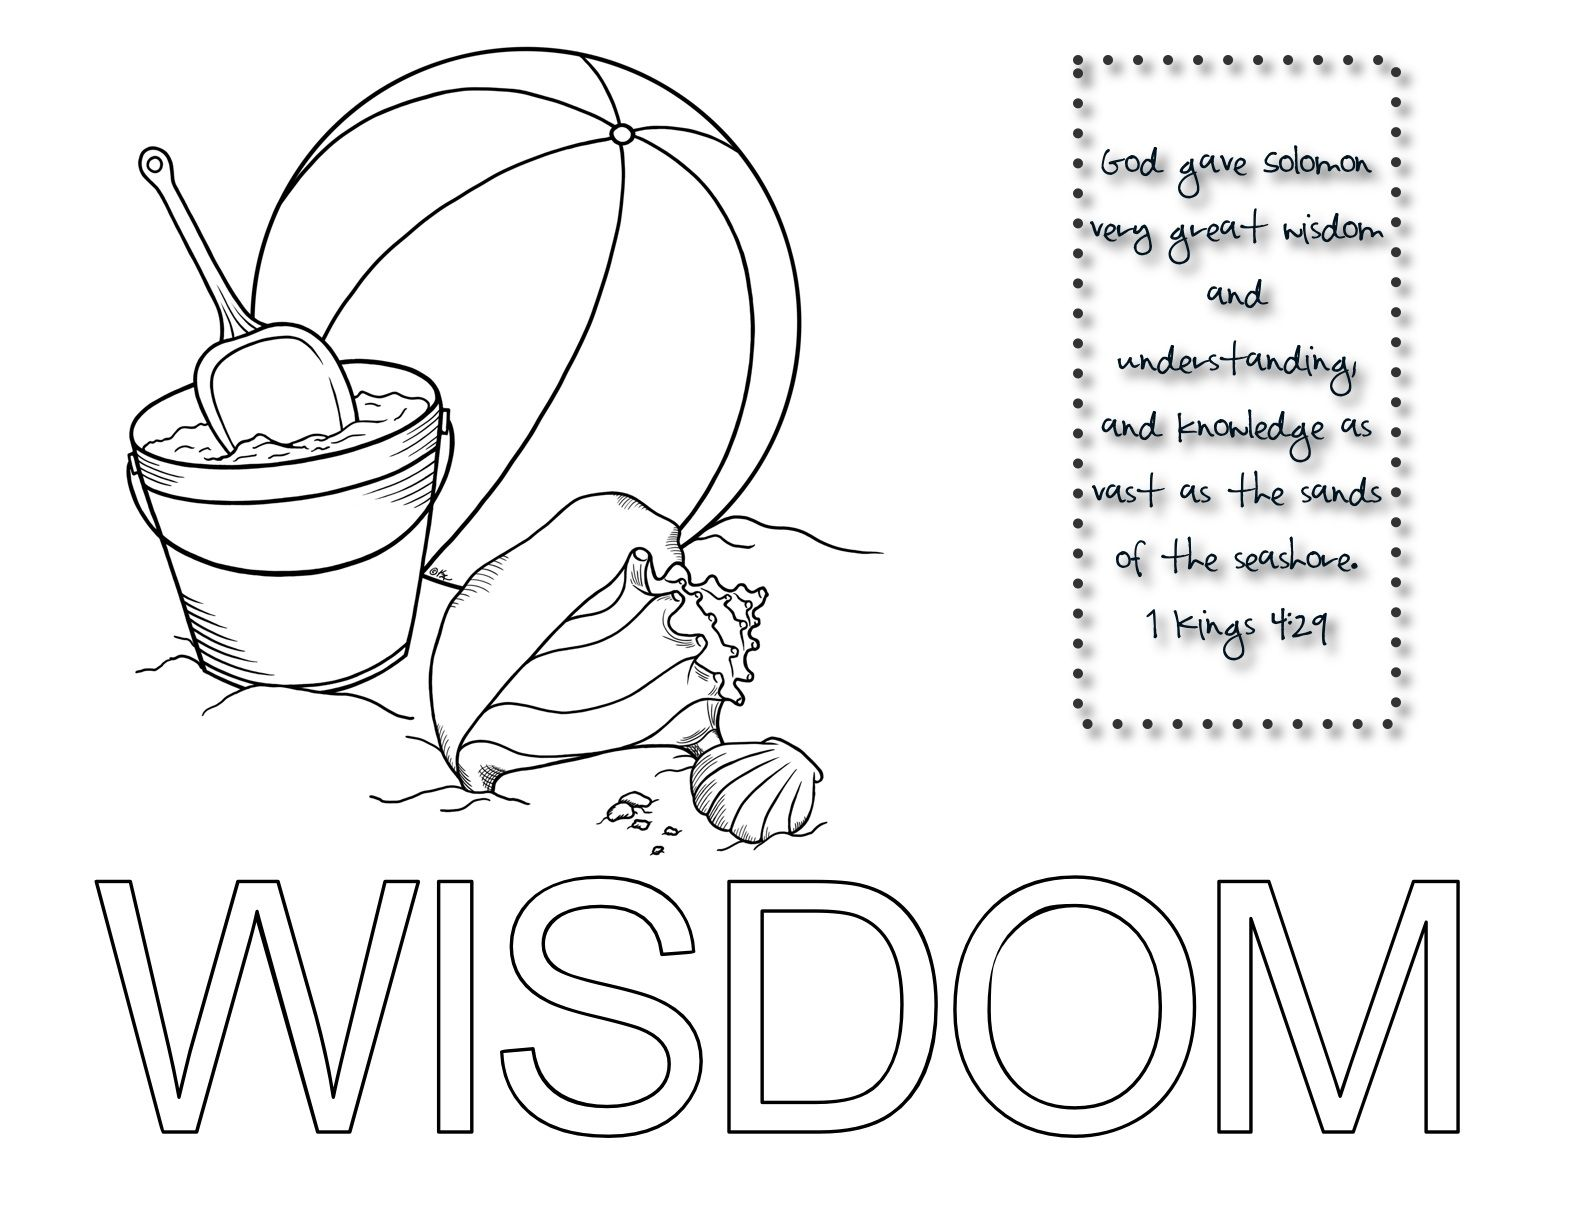 Glue Sand On Wisdom God Gave Solomon Very Great Wisdom And Understanding And Knowledge As Vast